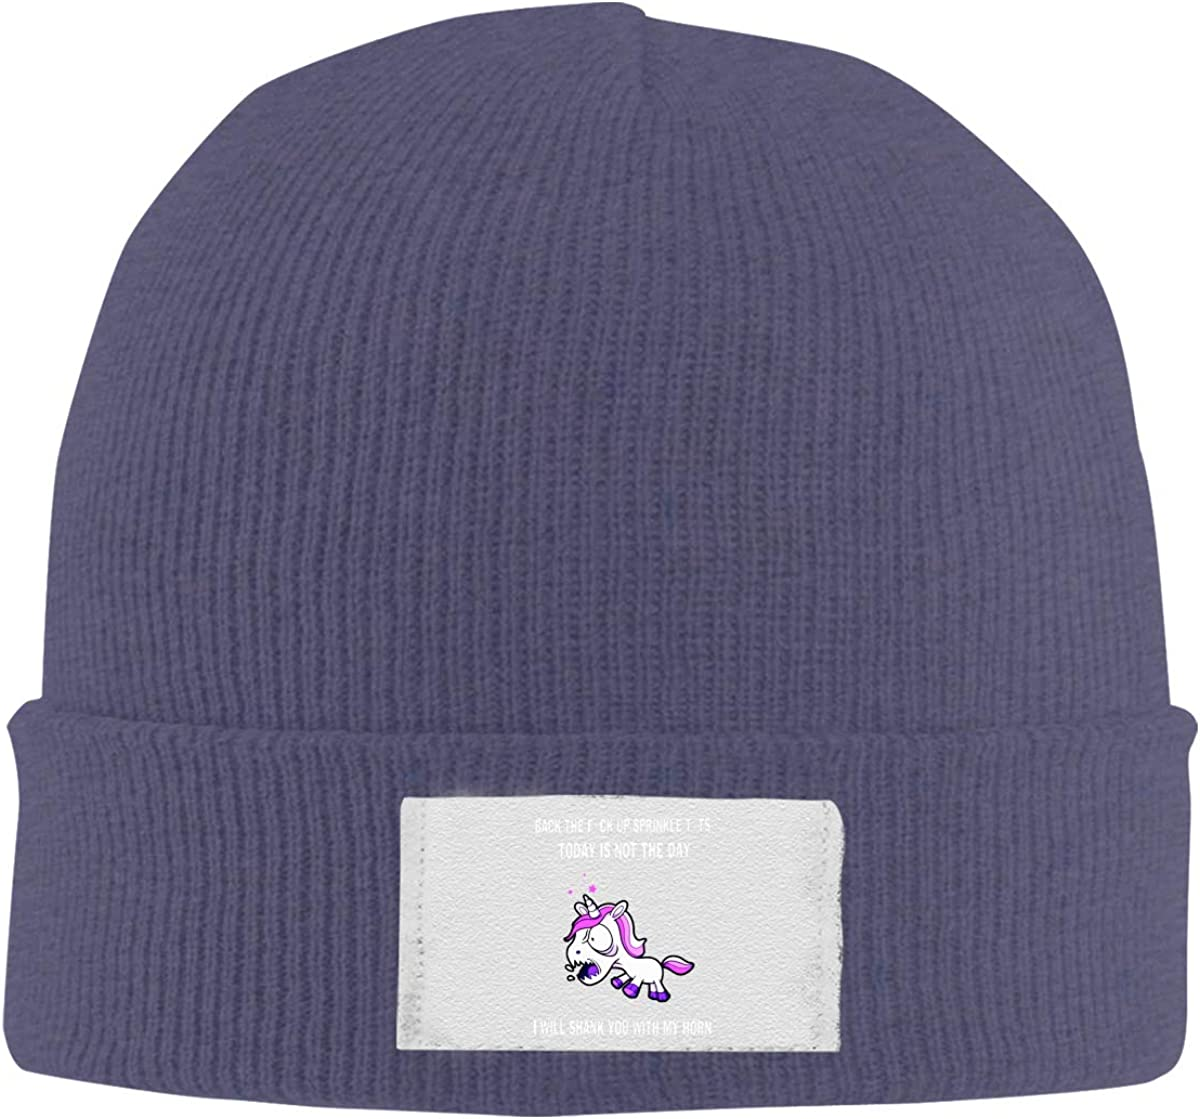 Mens Knit Beanies Hats Back The Fuck Up Sprinkle Tits Today is Not The Day